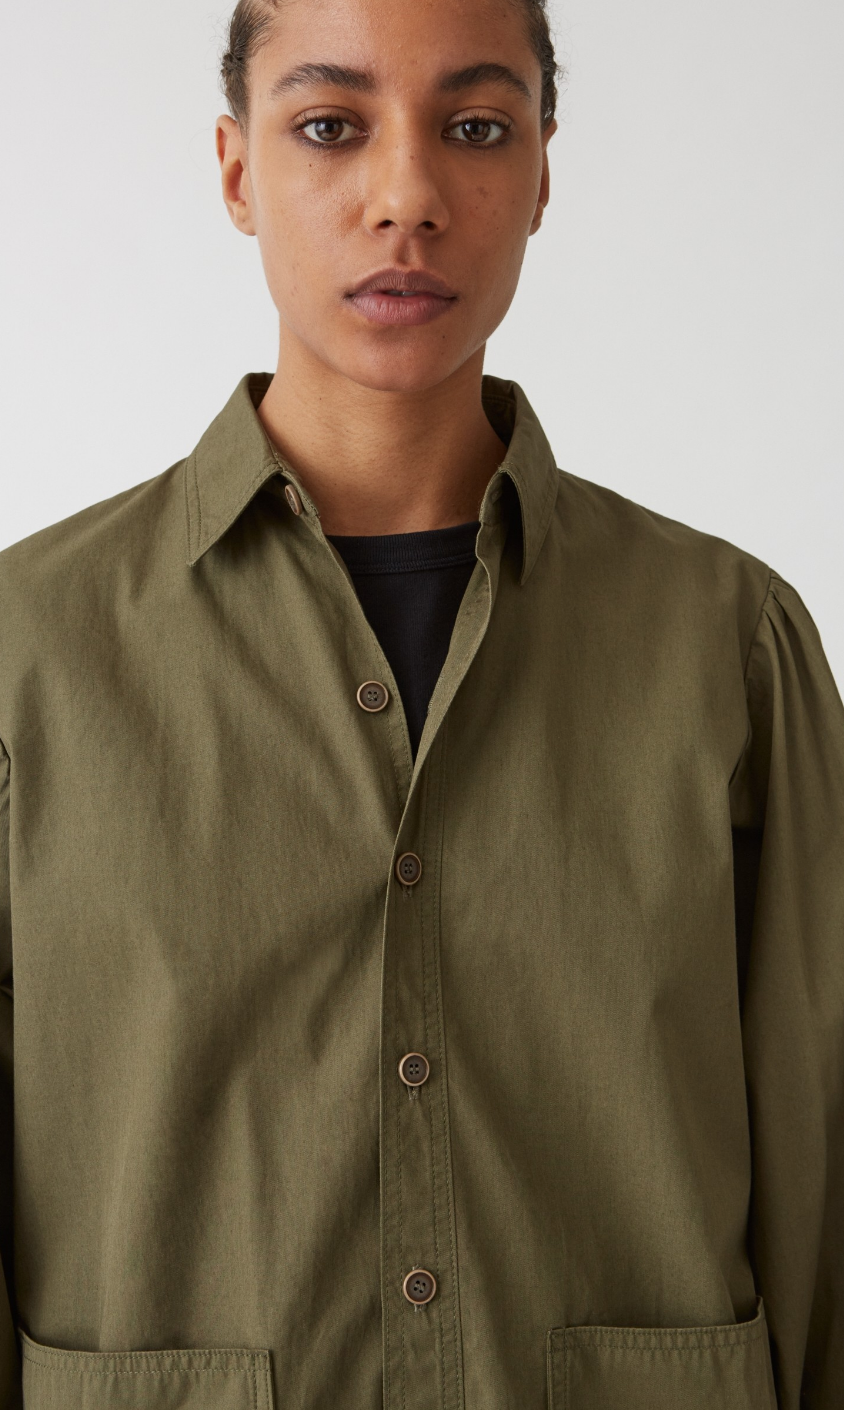 Idun-Saint Paul-Hope Dune Blazer-Khaki Green Jacket-Hope Jacket